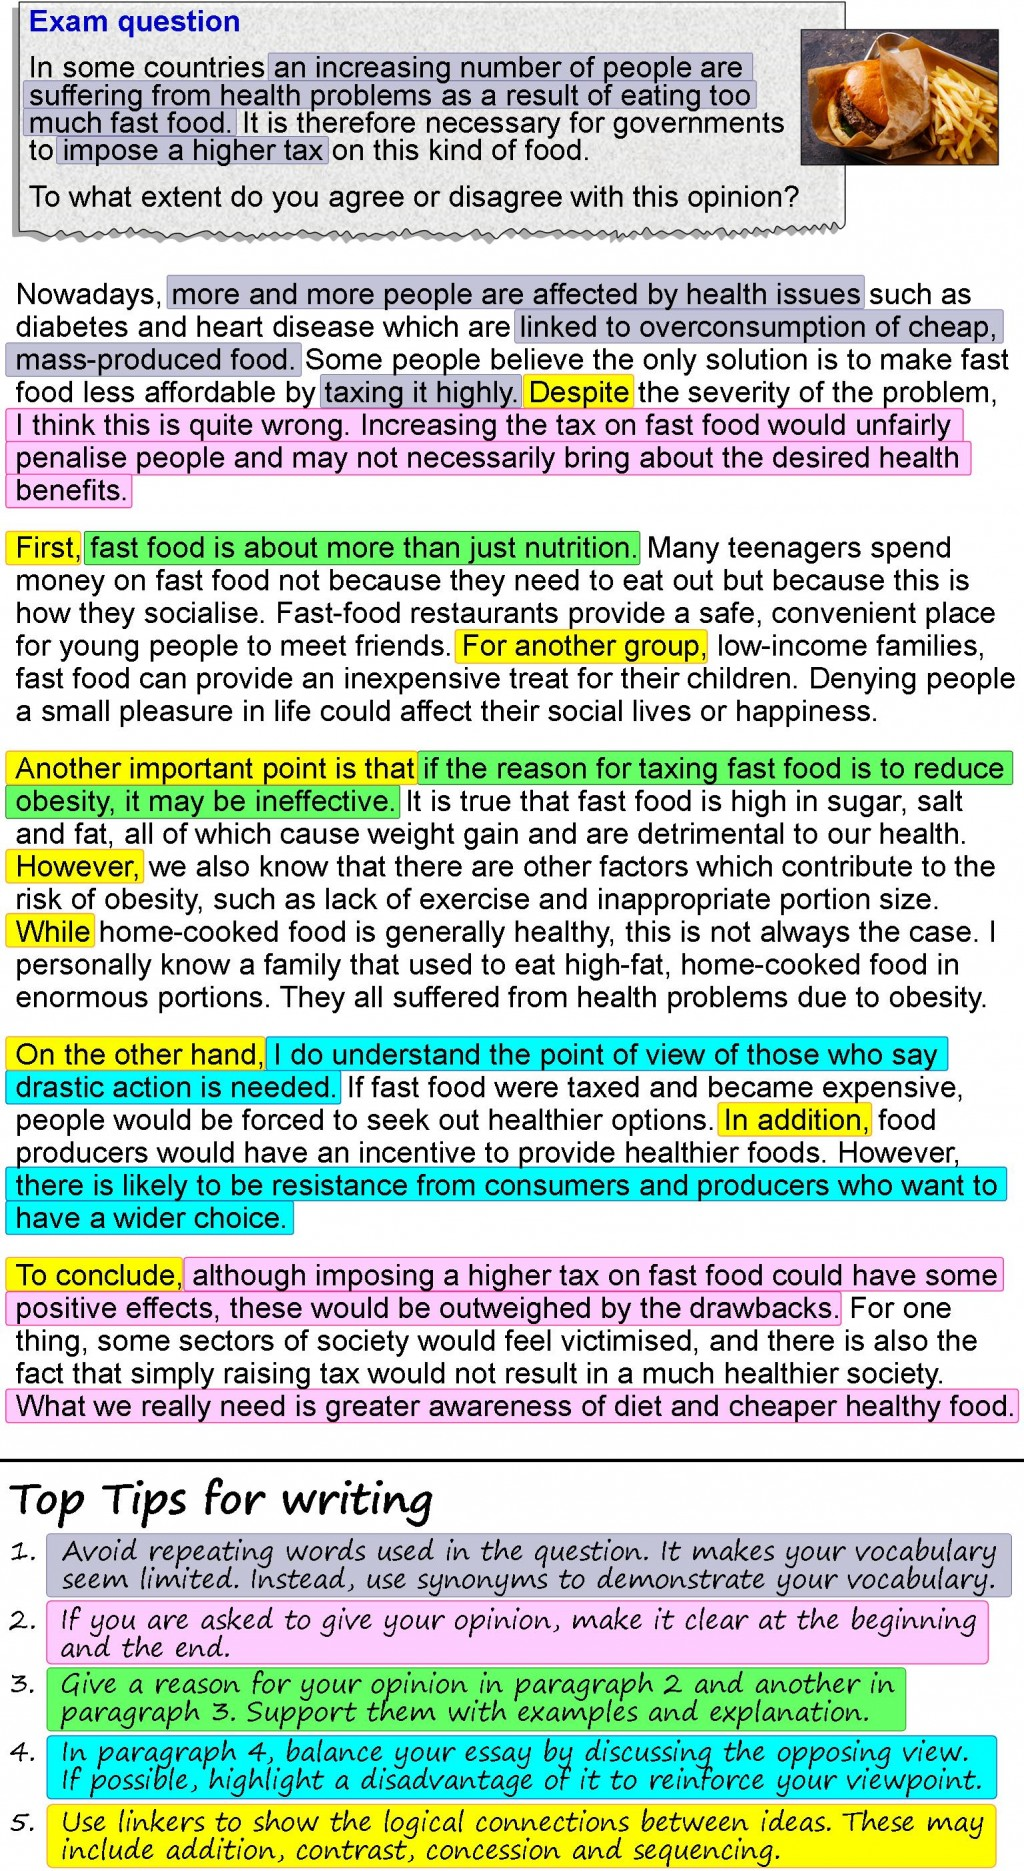 001 Opinion Essay About Fast Food Example An 4 Unbelievable Short British Council Large